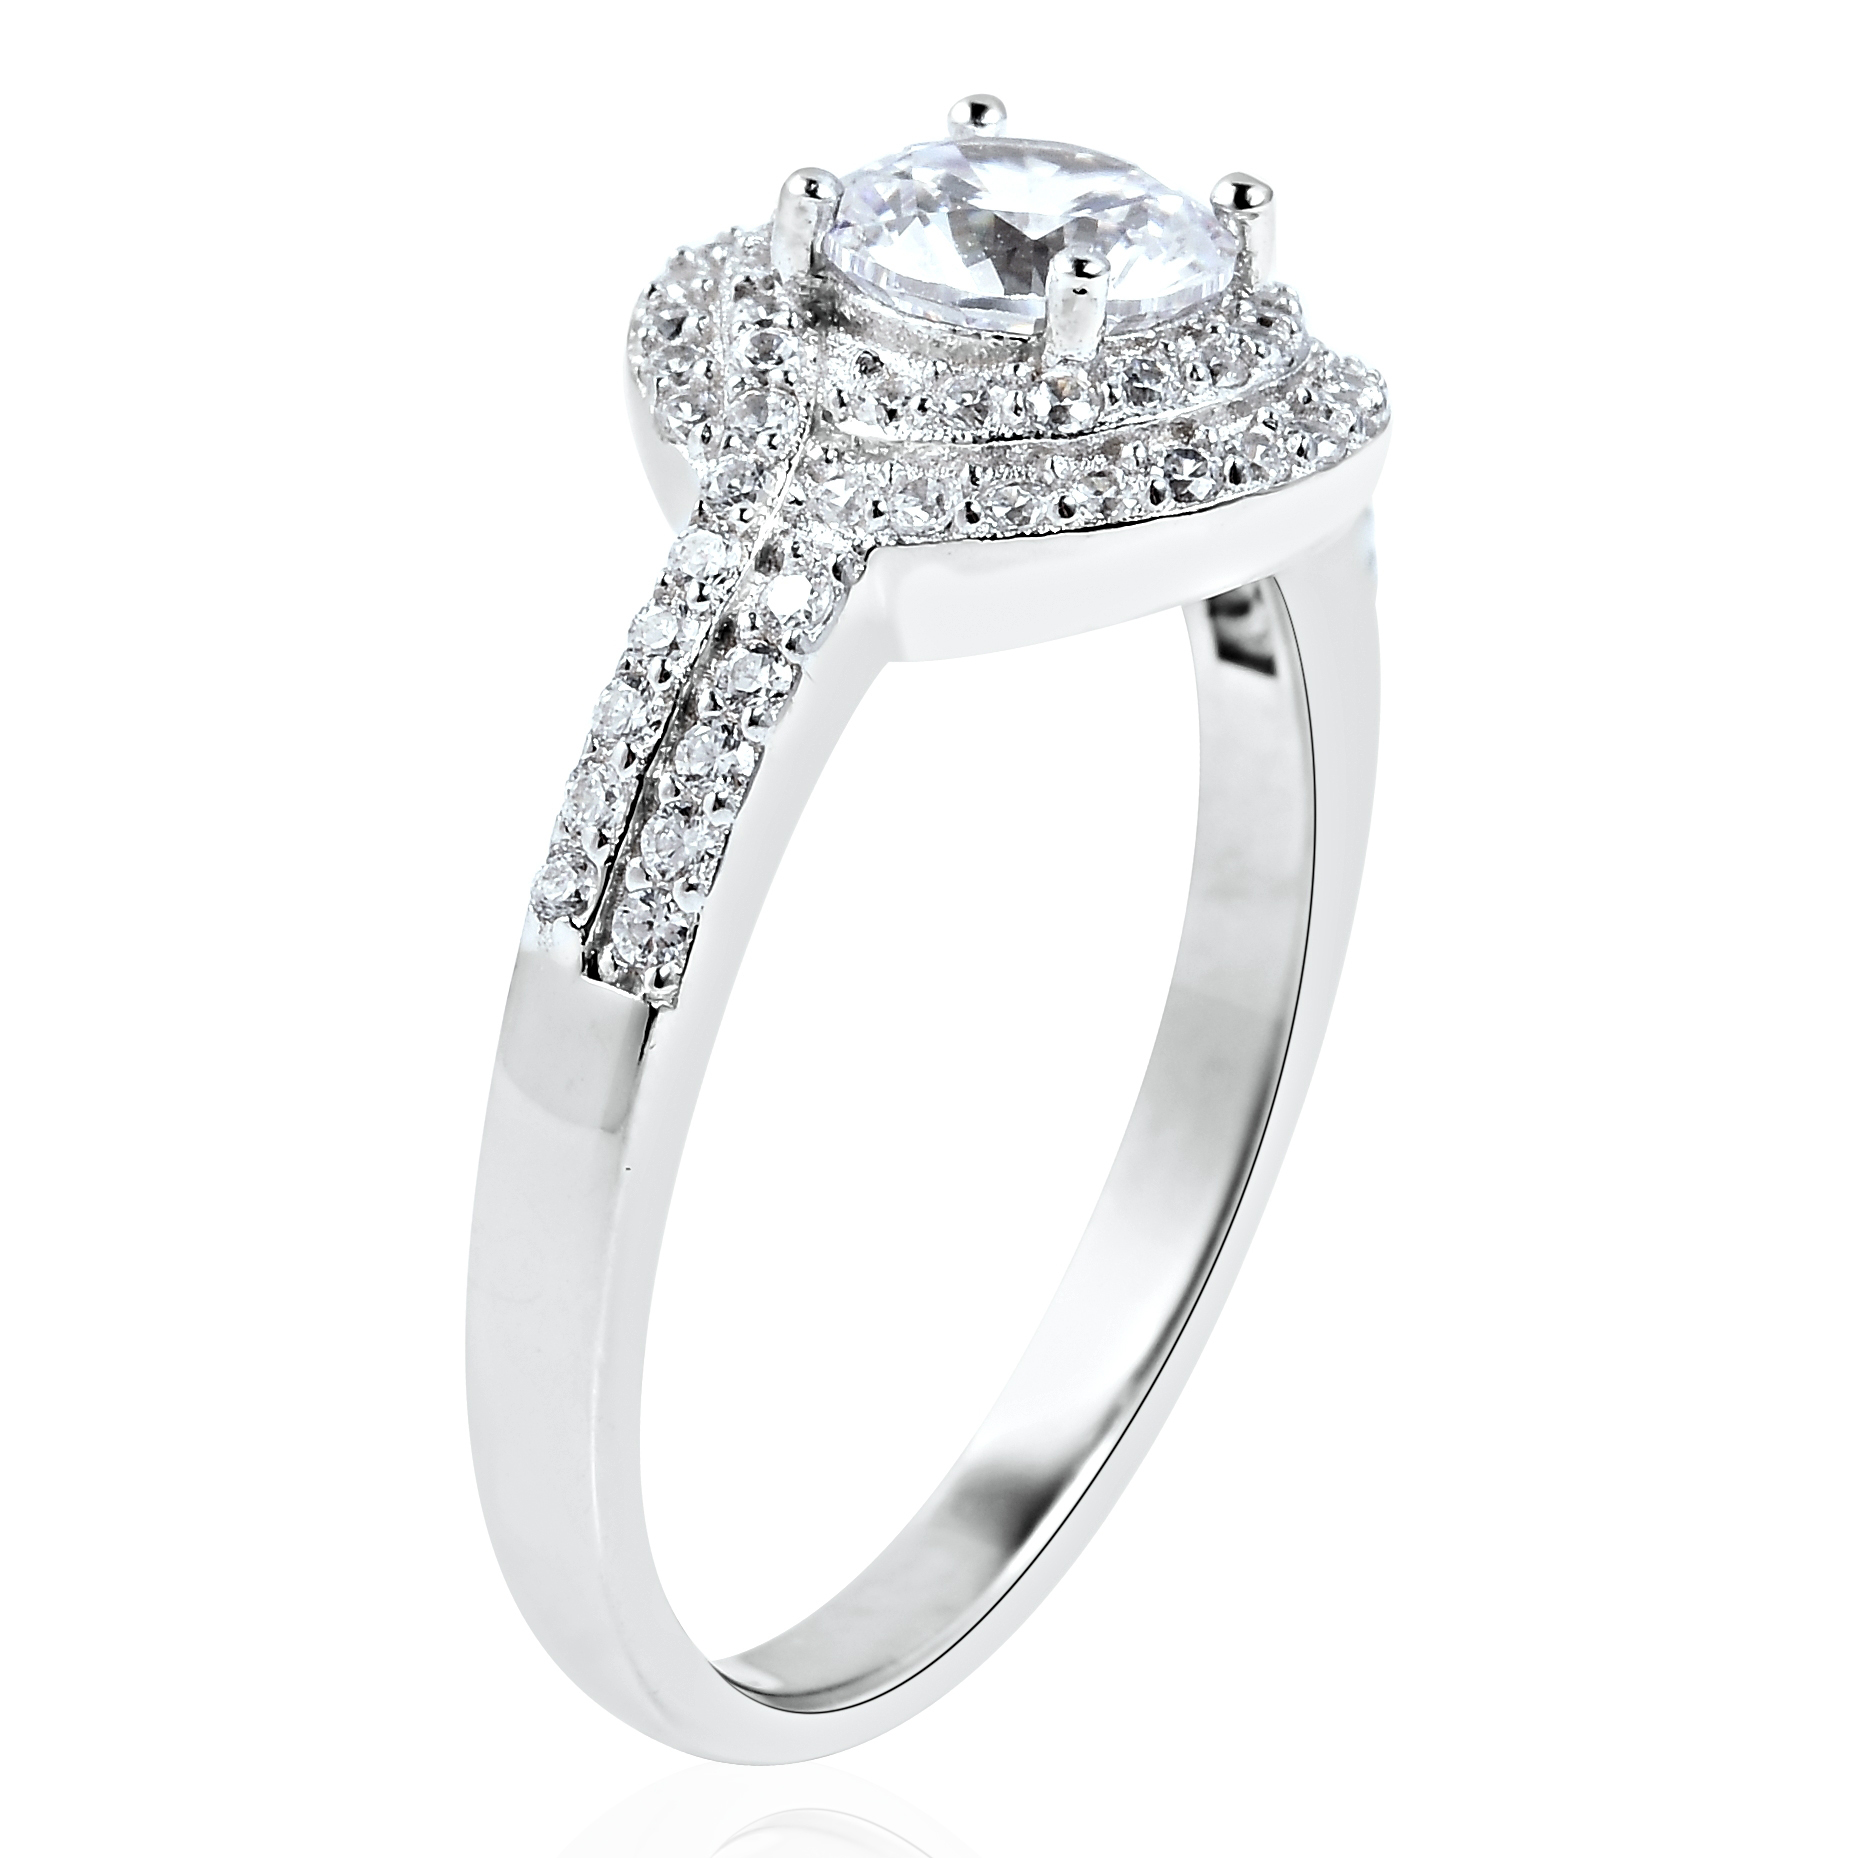 LUSTRO STELLA CZ Ring in Sterling Silver (Size 5.0) 1.65 ctw